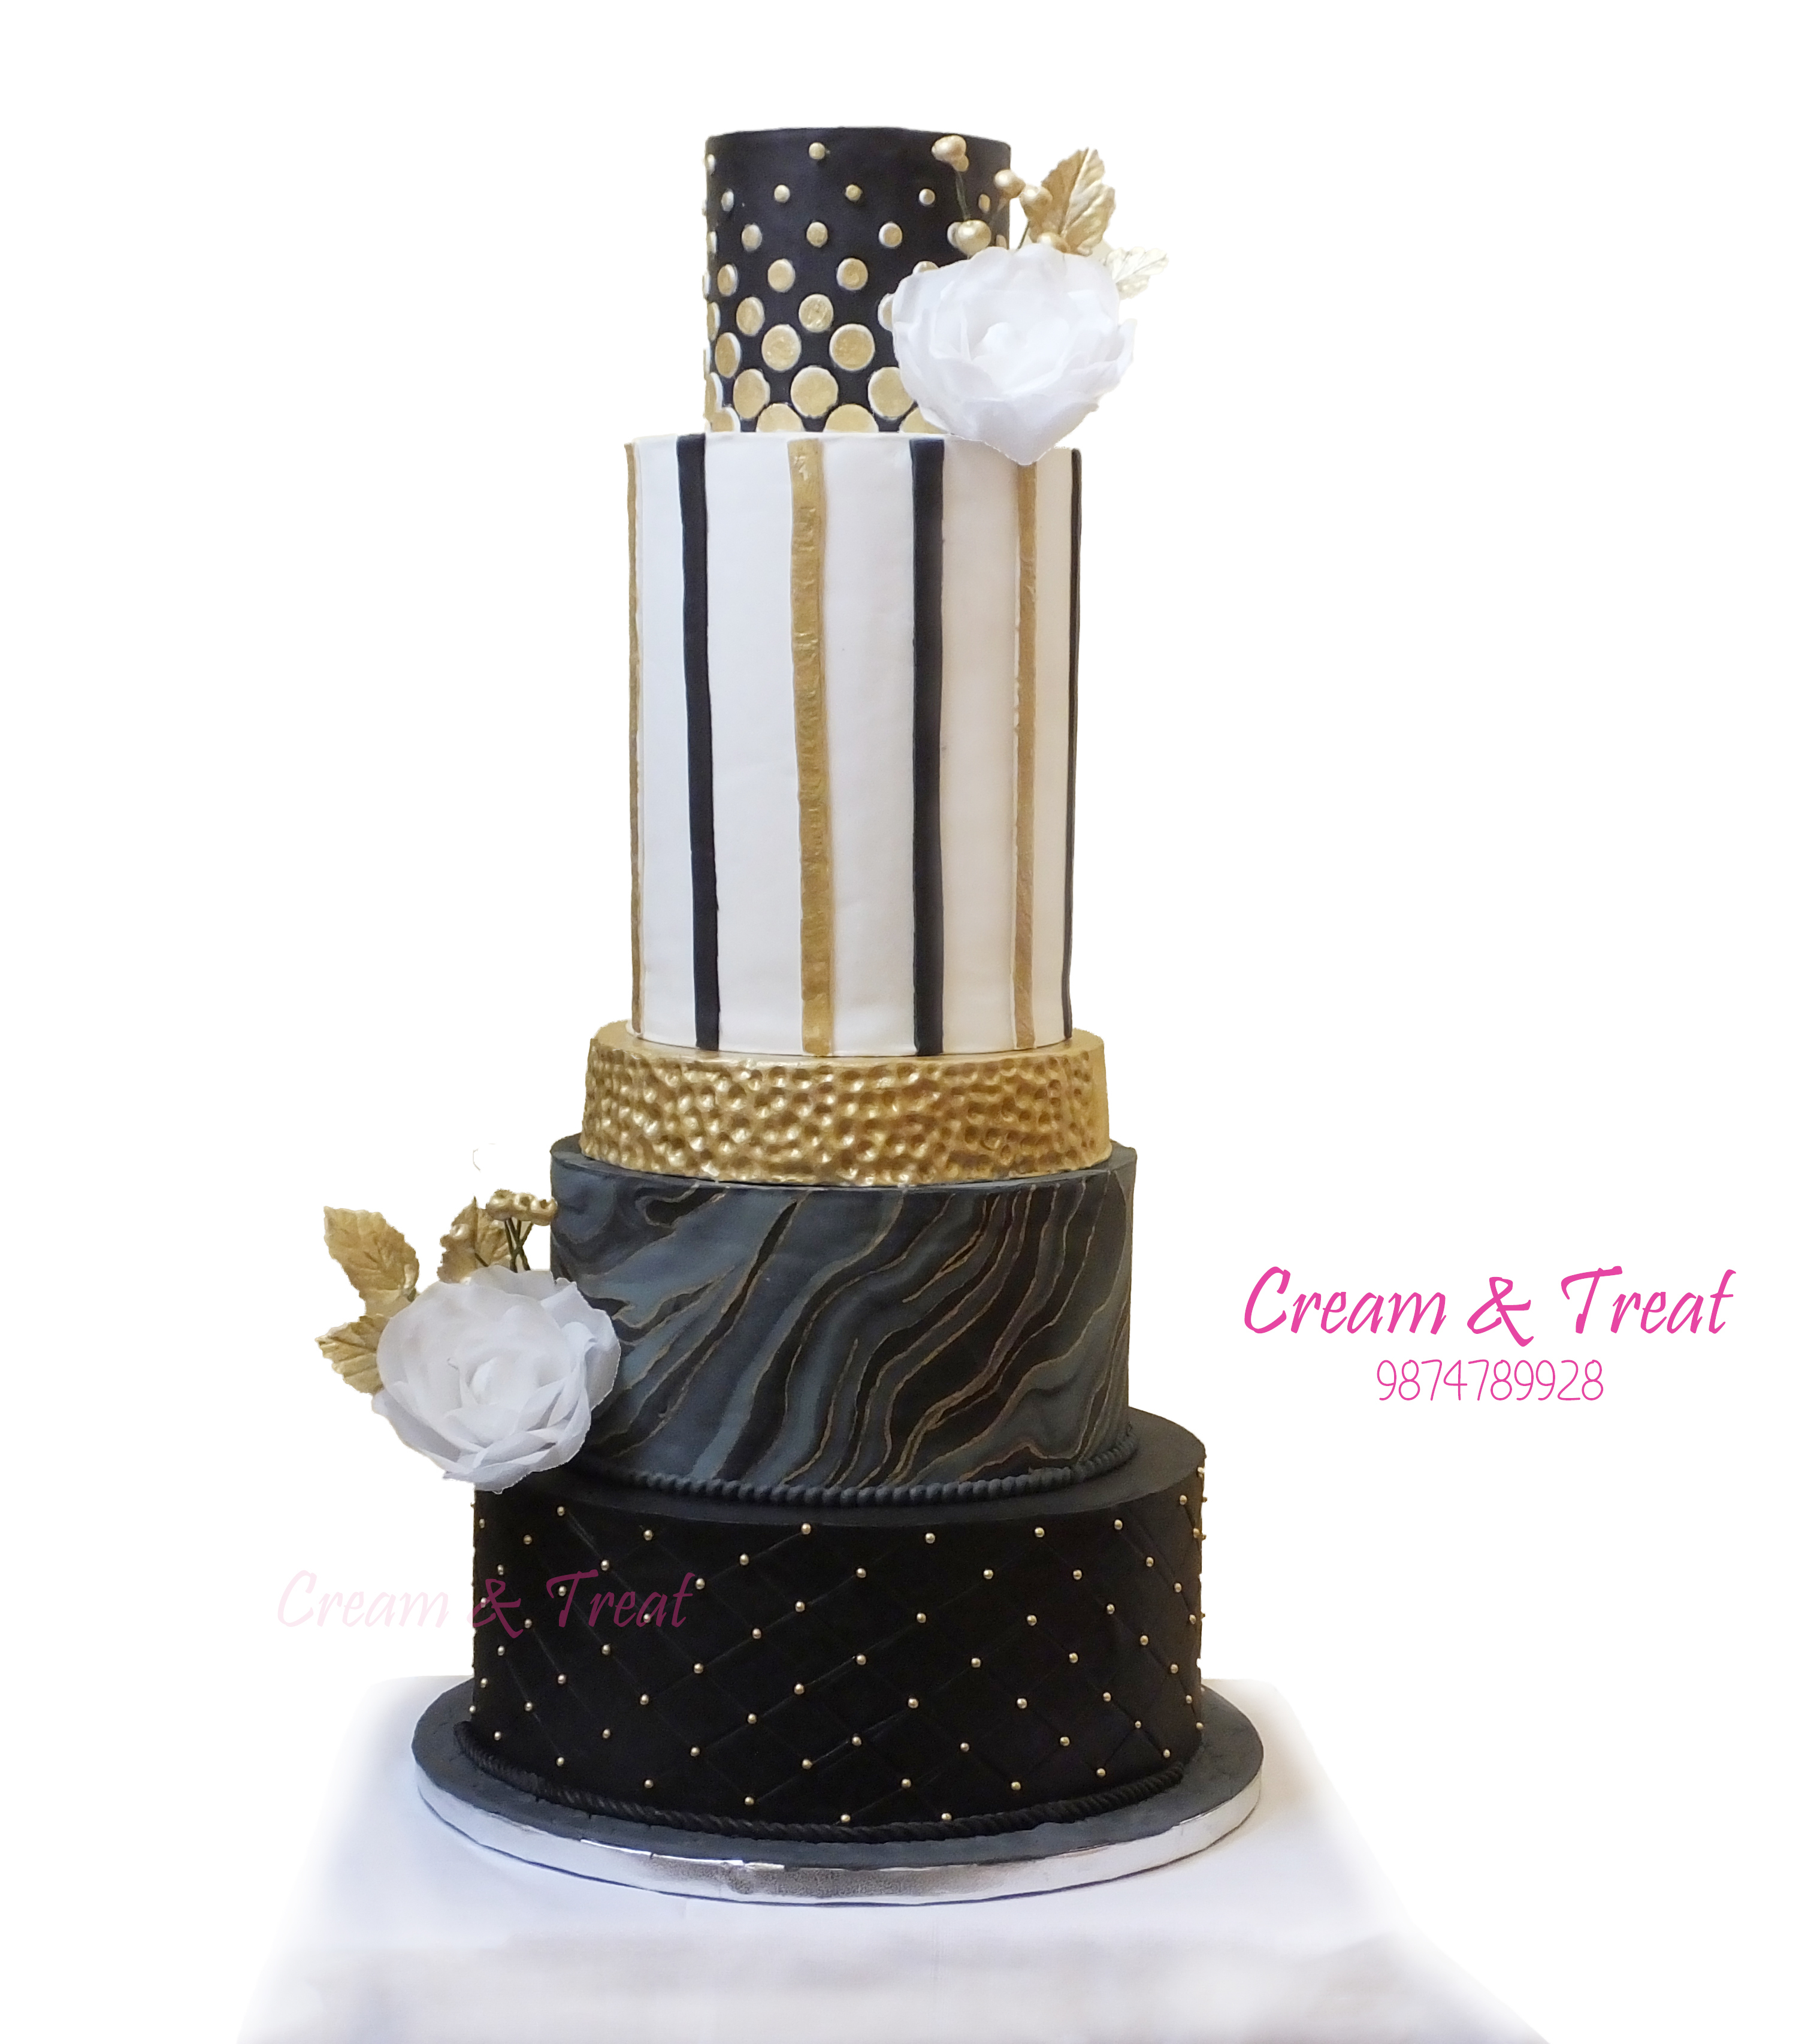 Black and gold striped fondant wedding cake with white